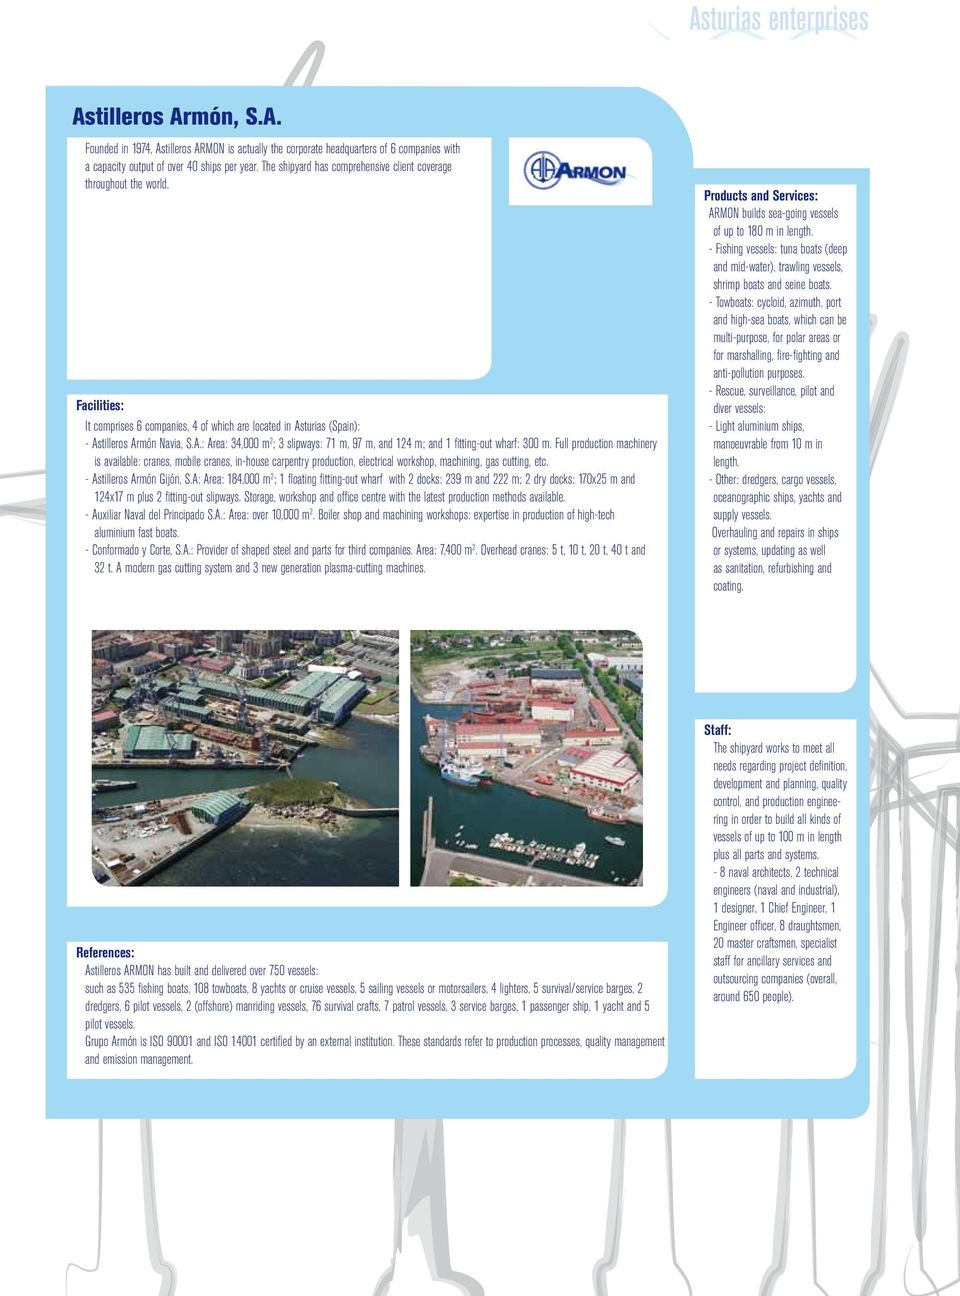 turias (Spain): - Astilleros Armón Navia, S.A.: Area: 34,000 m 2 ; 3 slipways: 71 m, 97 m, and 124 m; and 1 fitting-out wharf: 300 m.